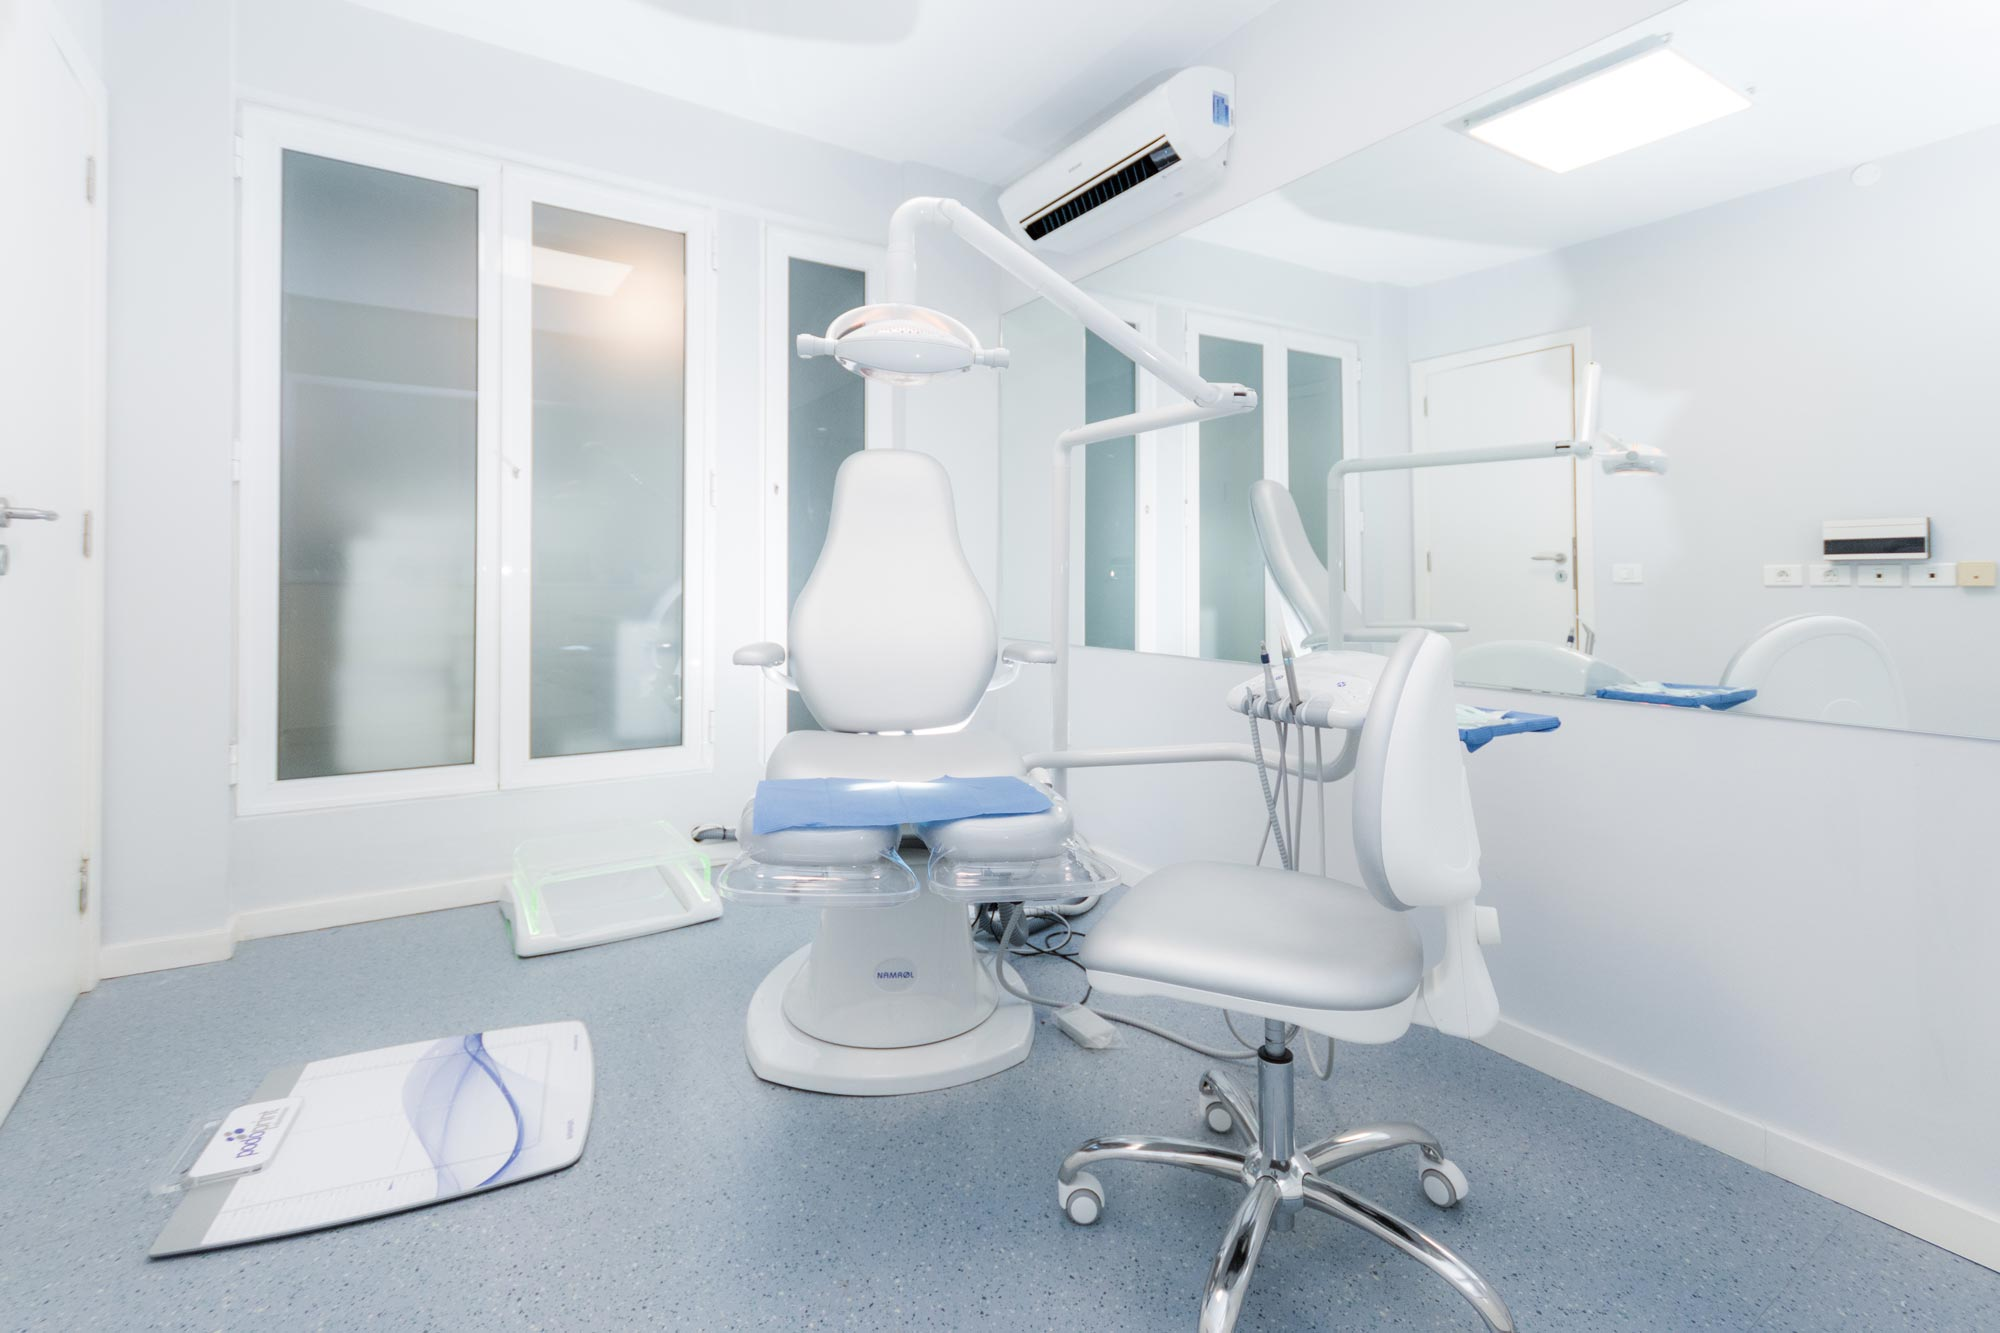 Clinica dental en Santa Cruz | Elisabeth Sieper